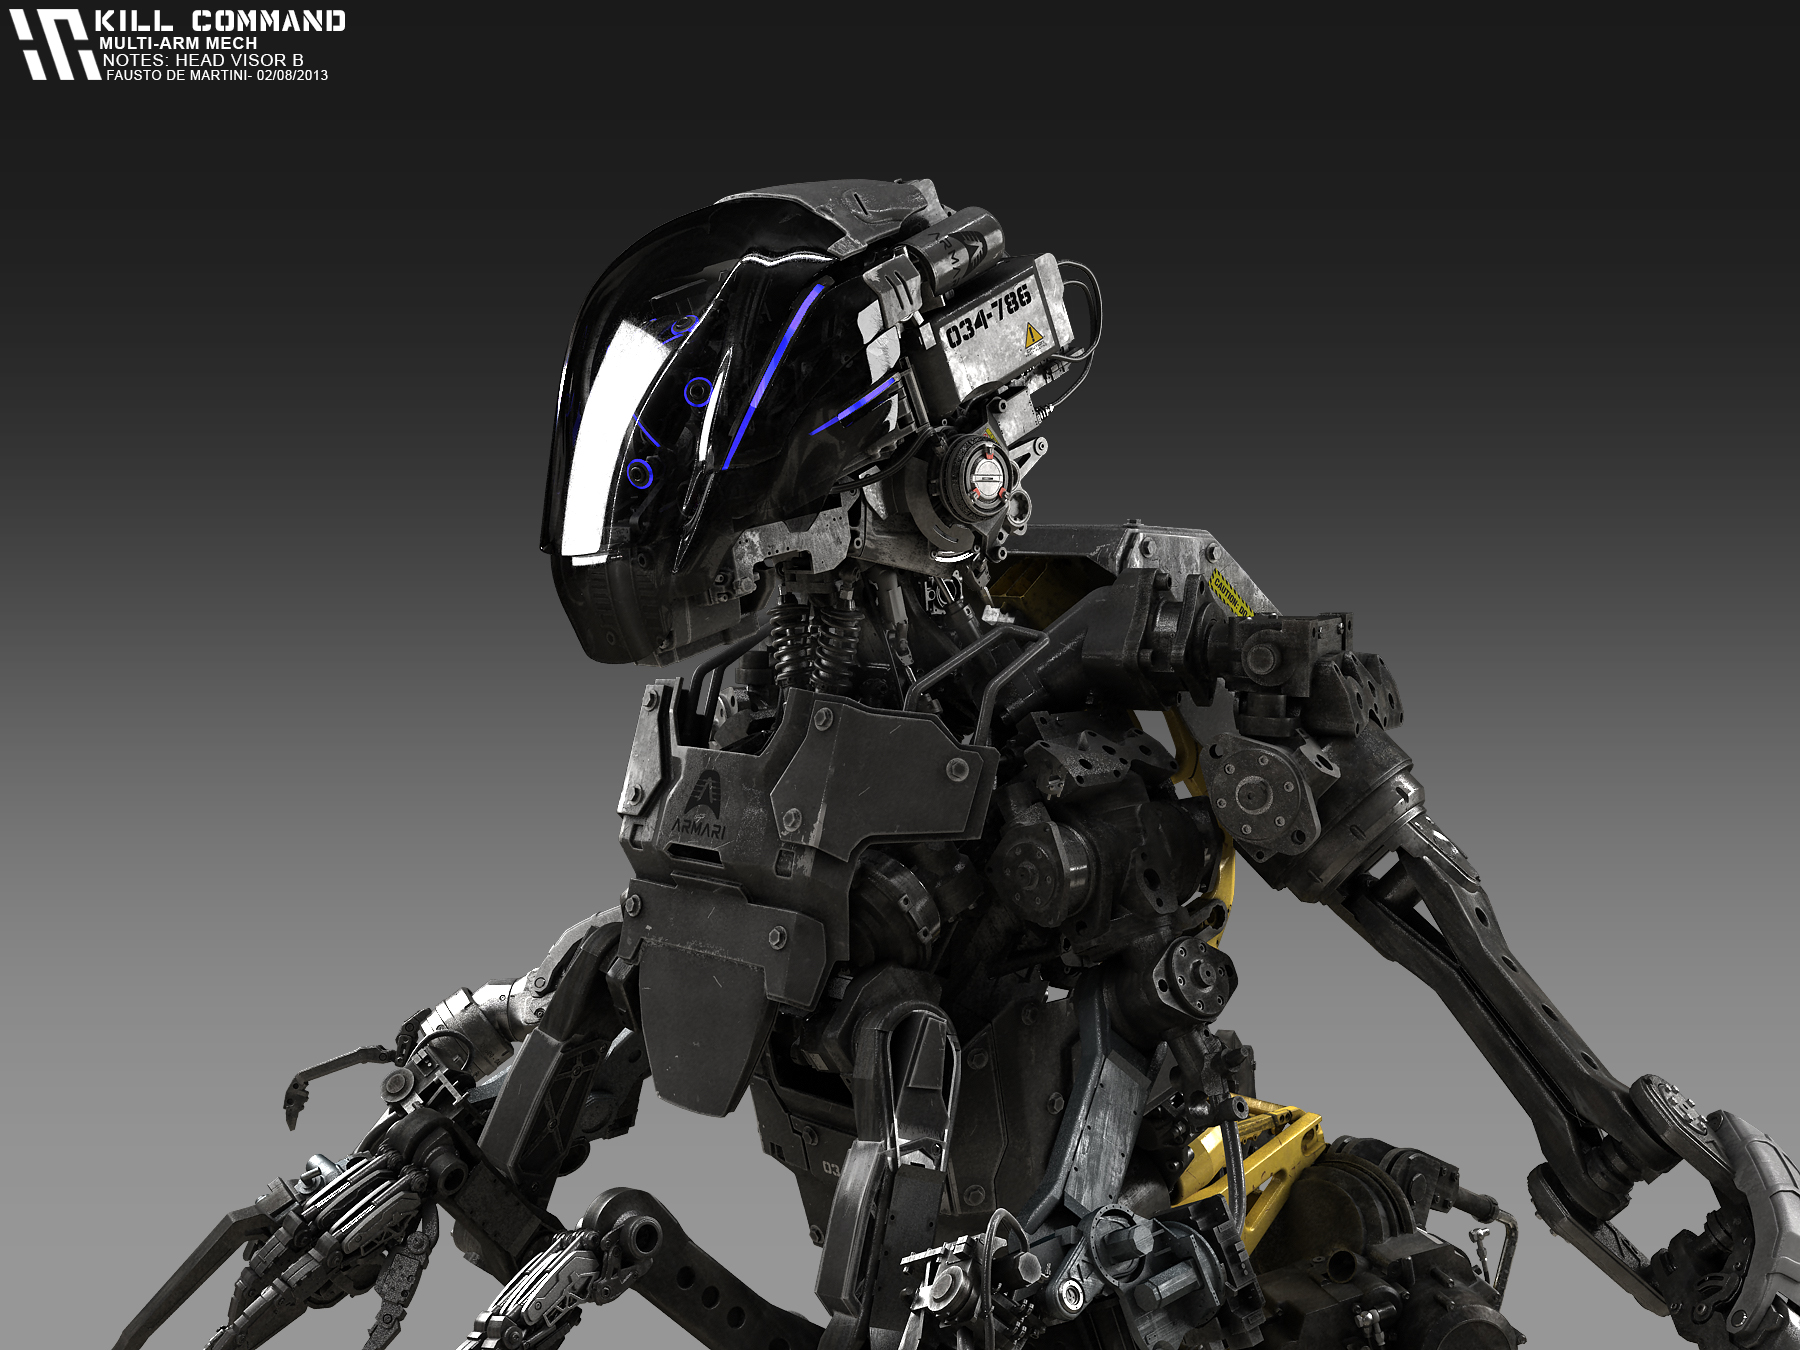 KILLCOMMAND_MultiArms_080213_HeadVisorB_03_FDM.jpg